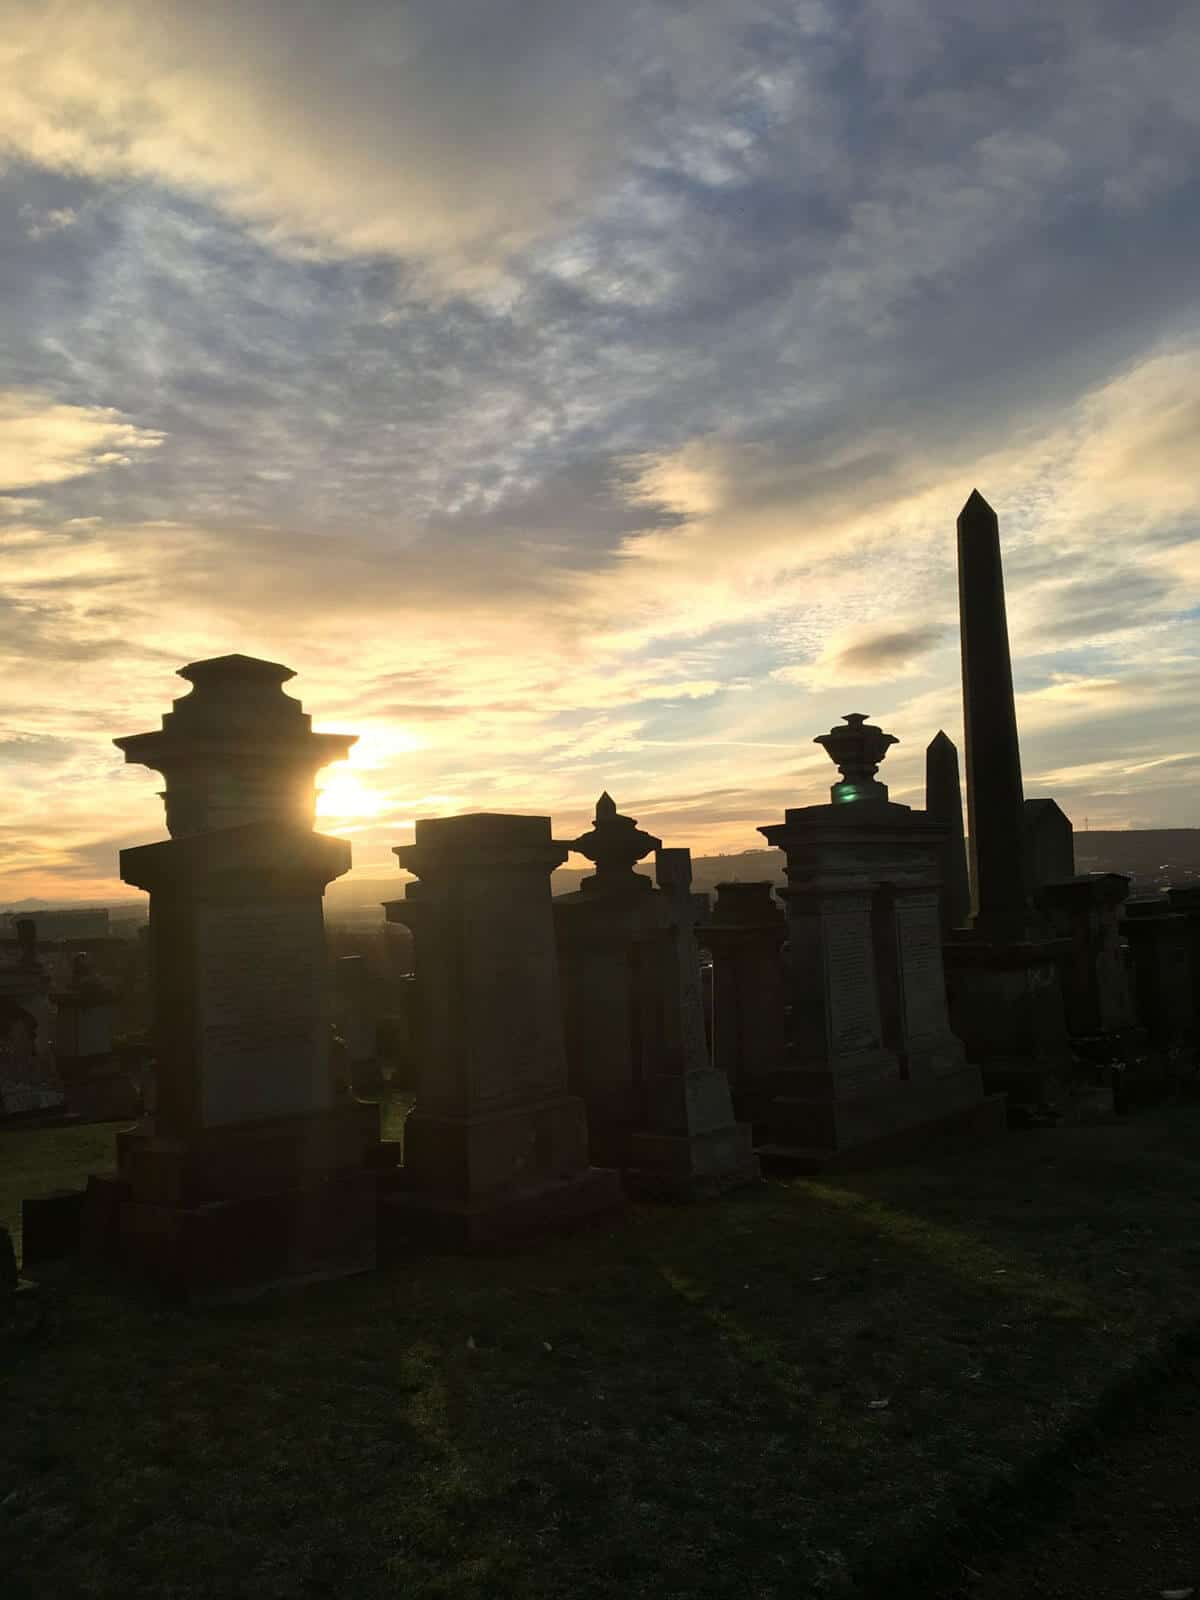 The sun rises with a calm yellow and blue cloud filled sky with the silhouette of several gravestones lined up next to each other in front of the Sunrise at Glasgow Necropolis